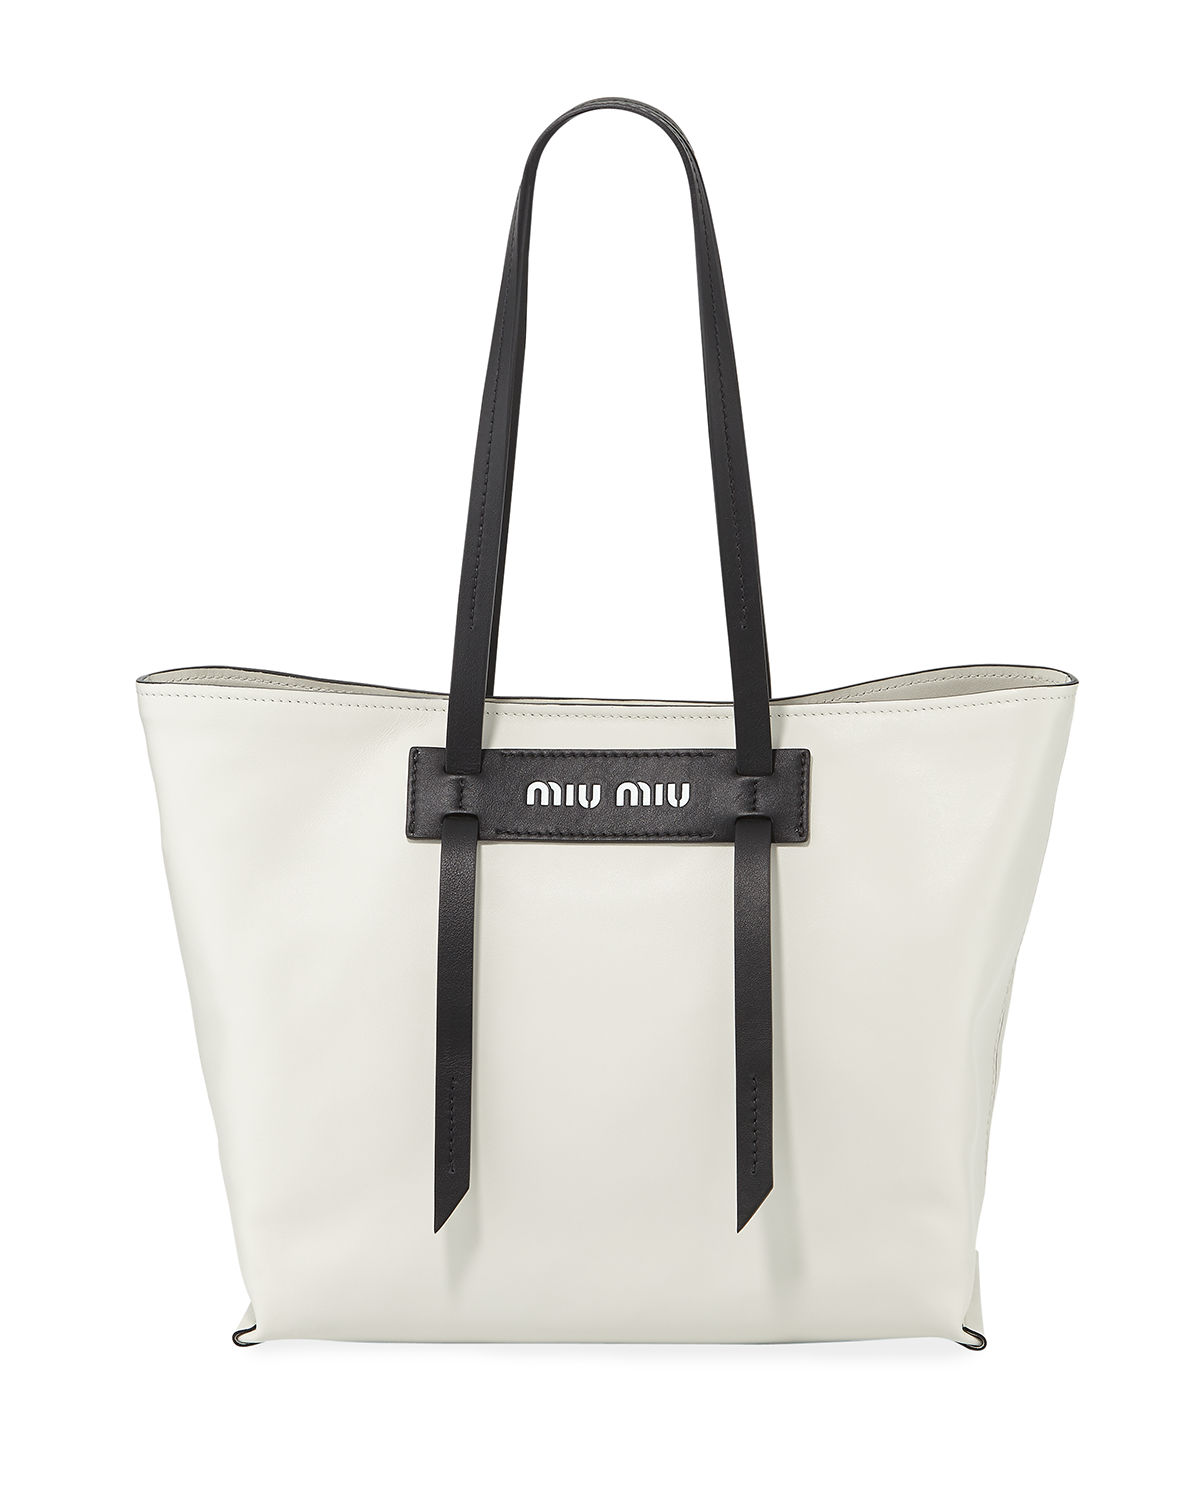 Patch Small Grace Lux Tote Bag